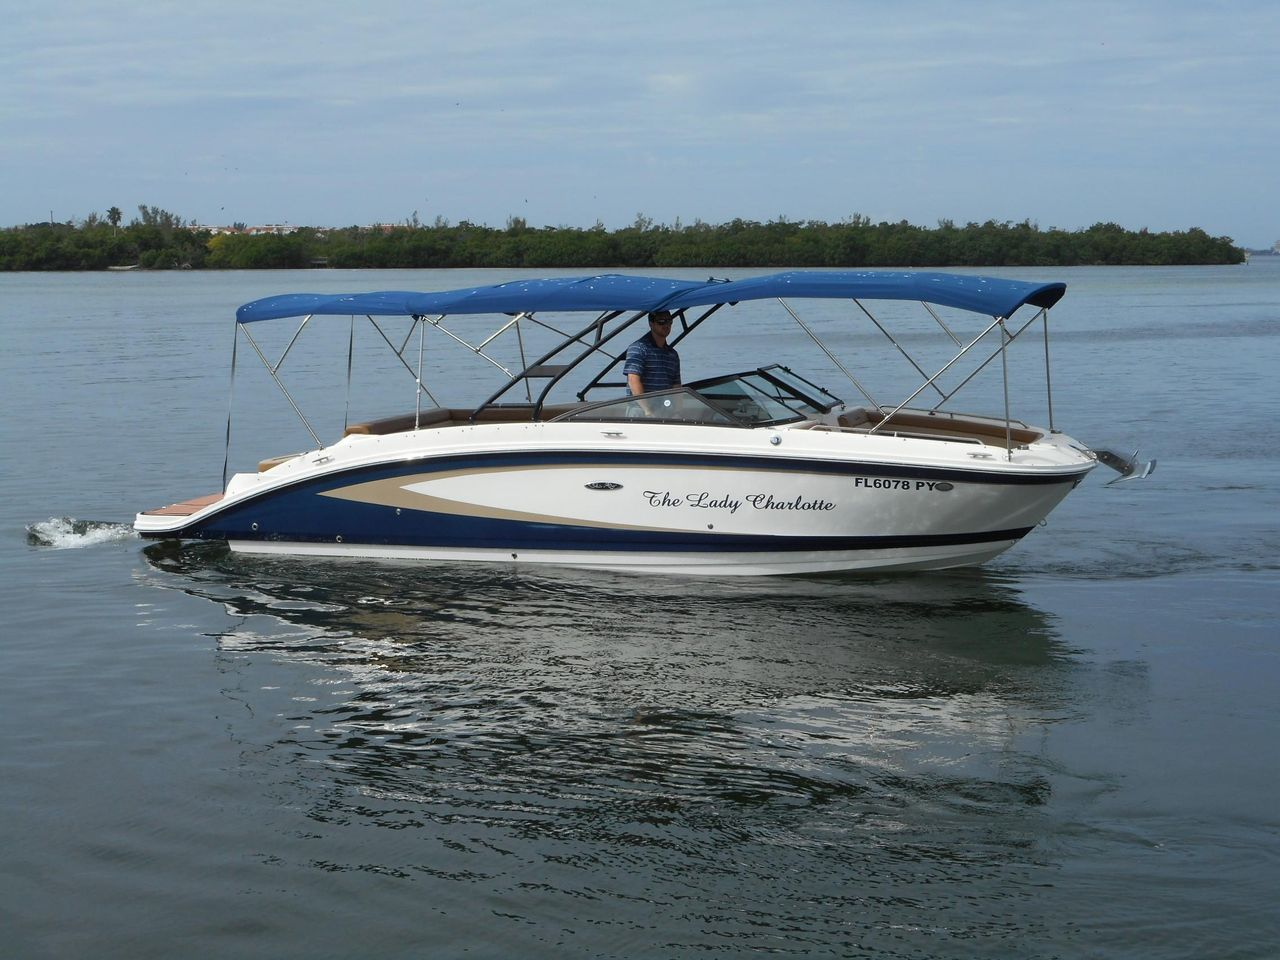 2015 Used Sea Ray 270 Sundeck Bowrider Boat For Sale - $62,500